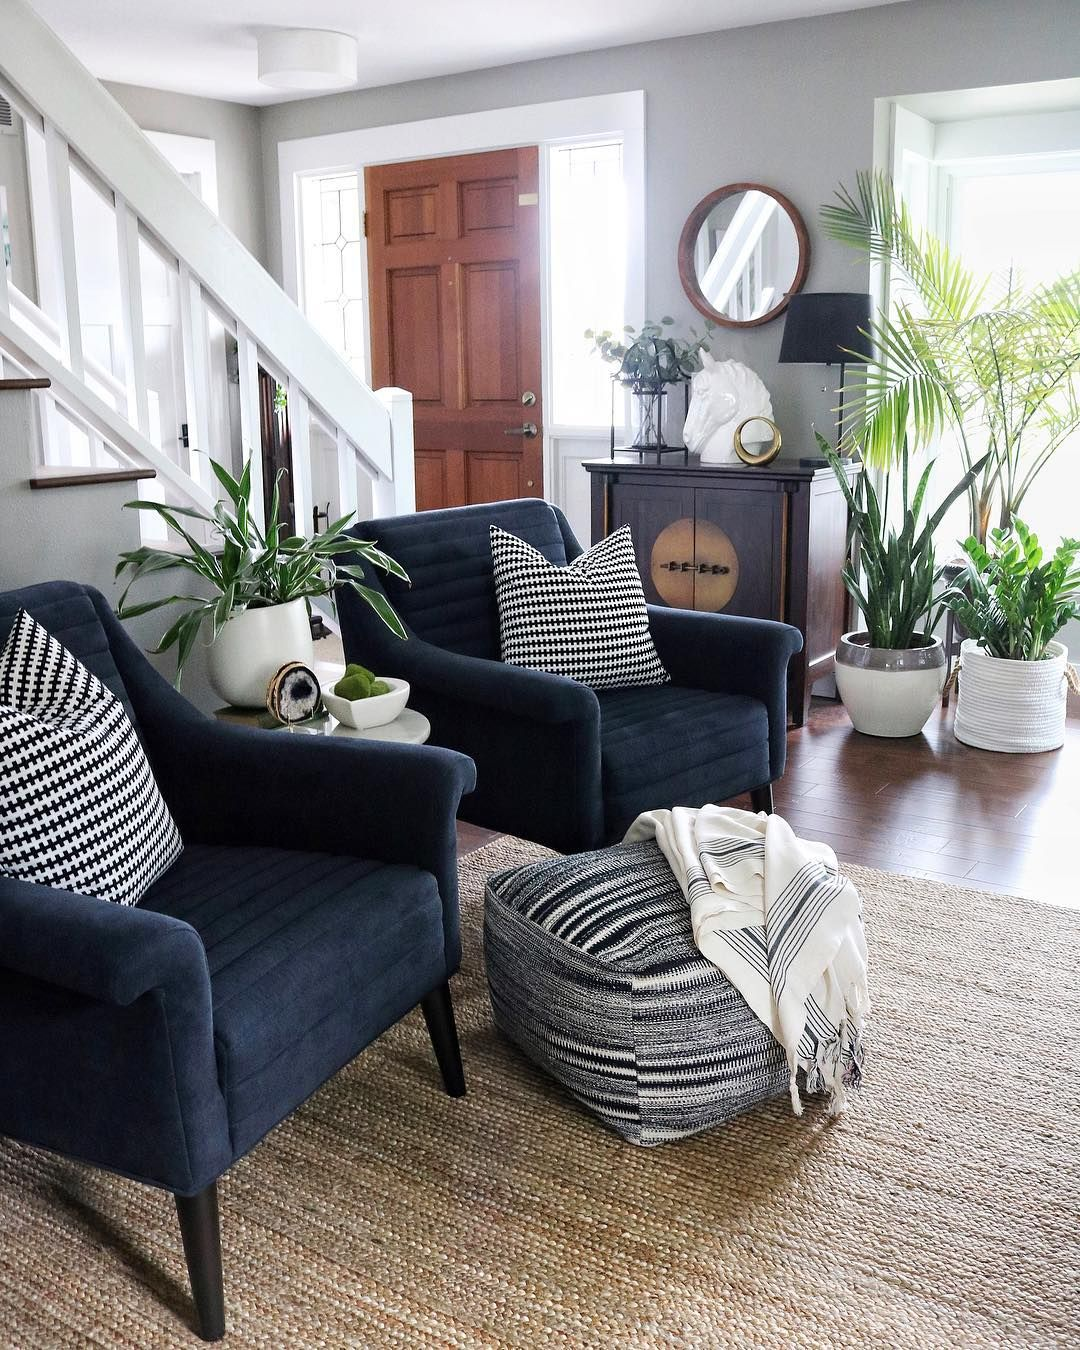 Living Room With Navy Accent Chairs Jute Rug Plant S Blue